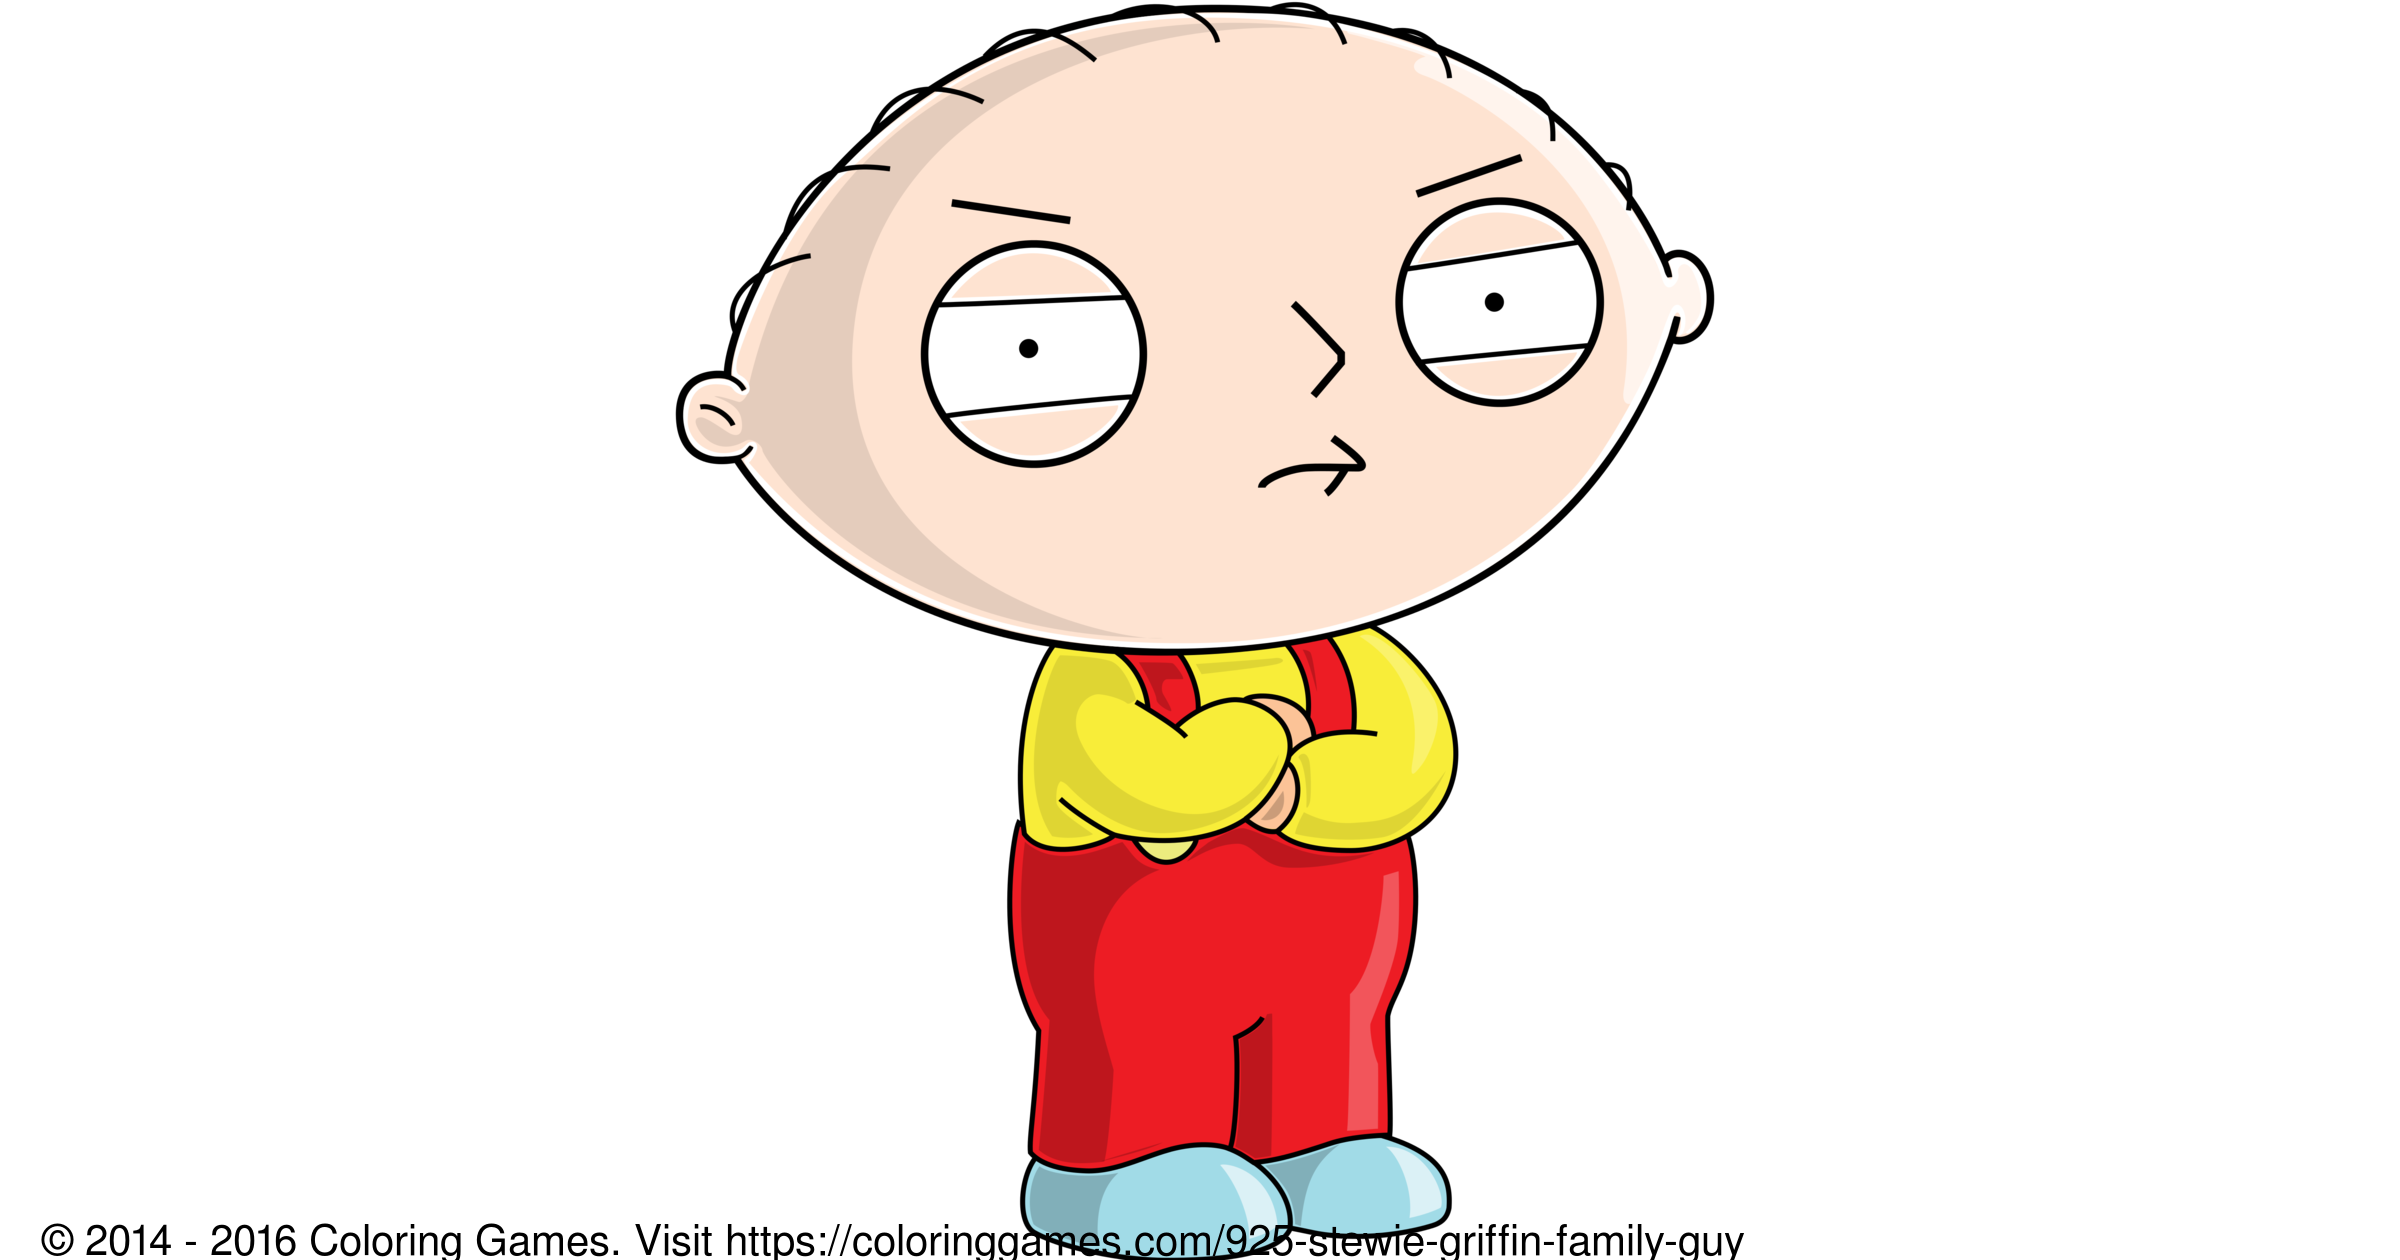 stewie griffin family guy coloring games and coloring pages